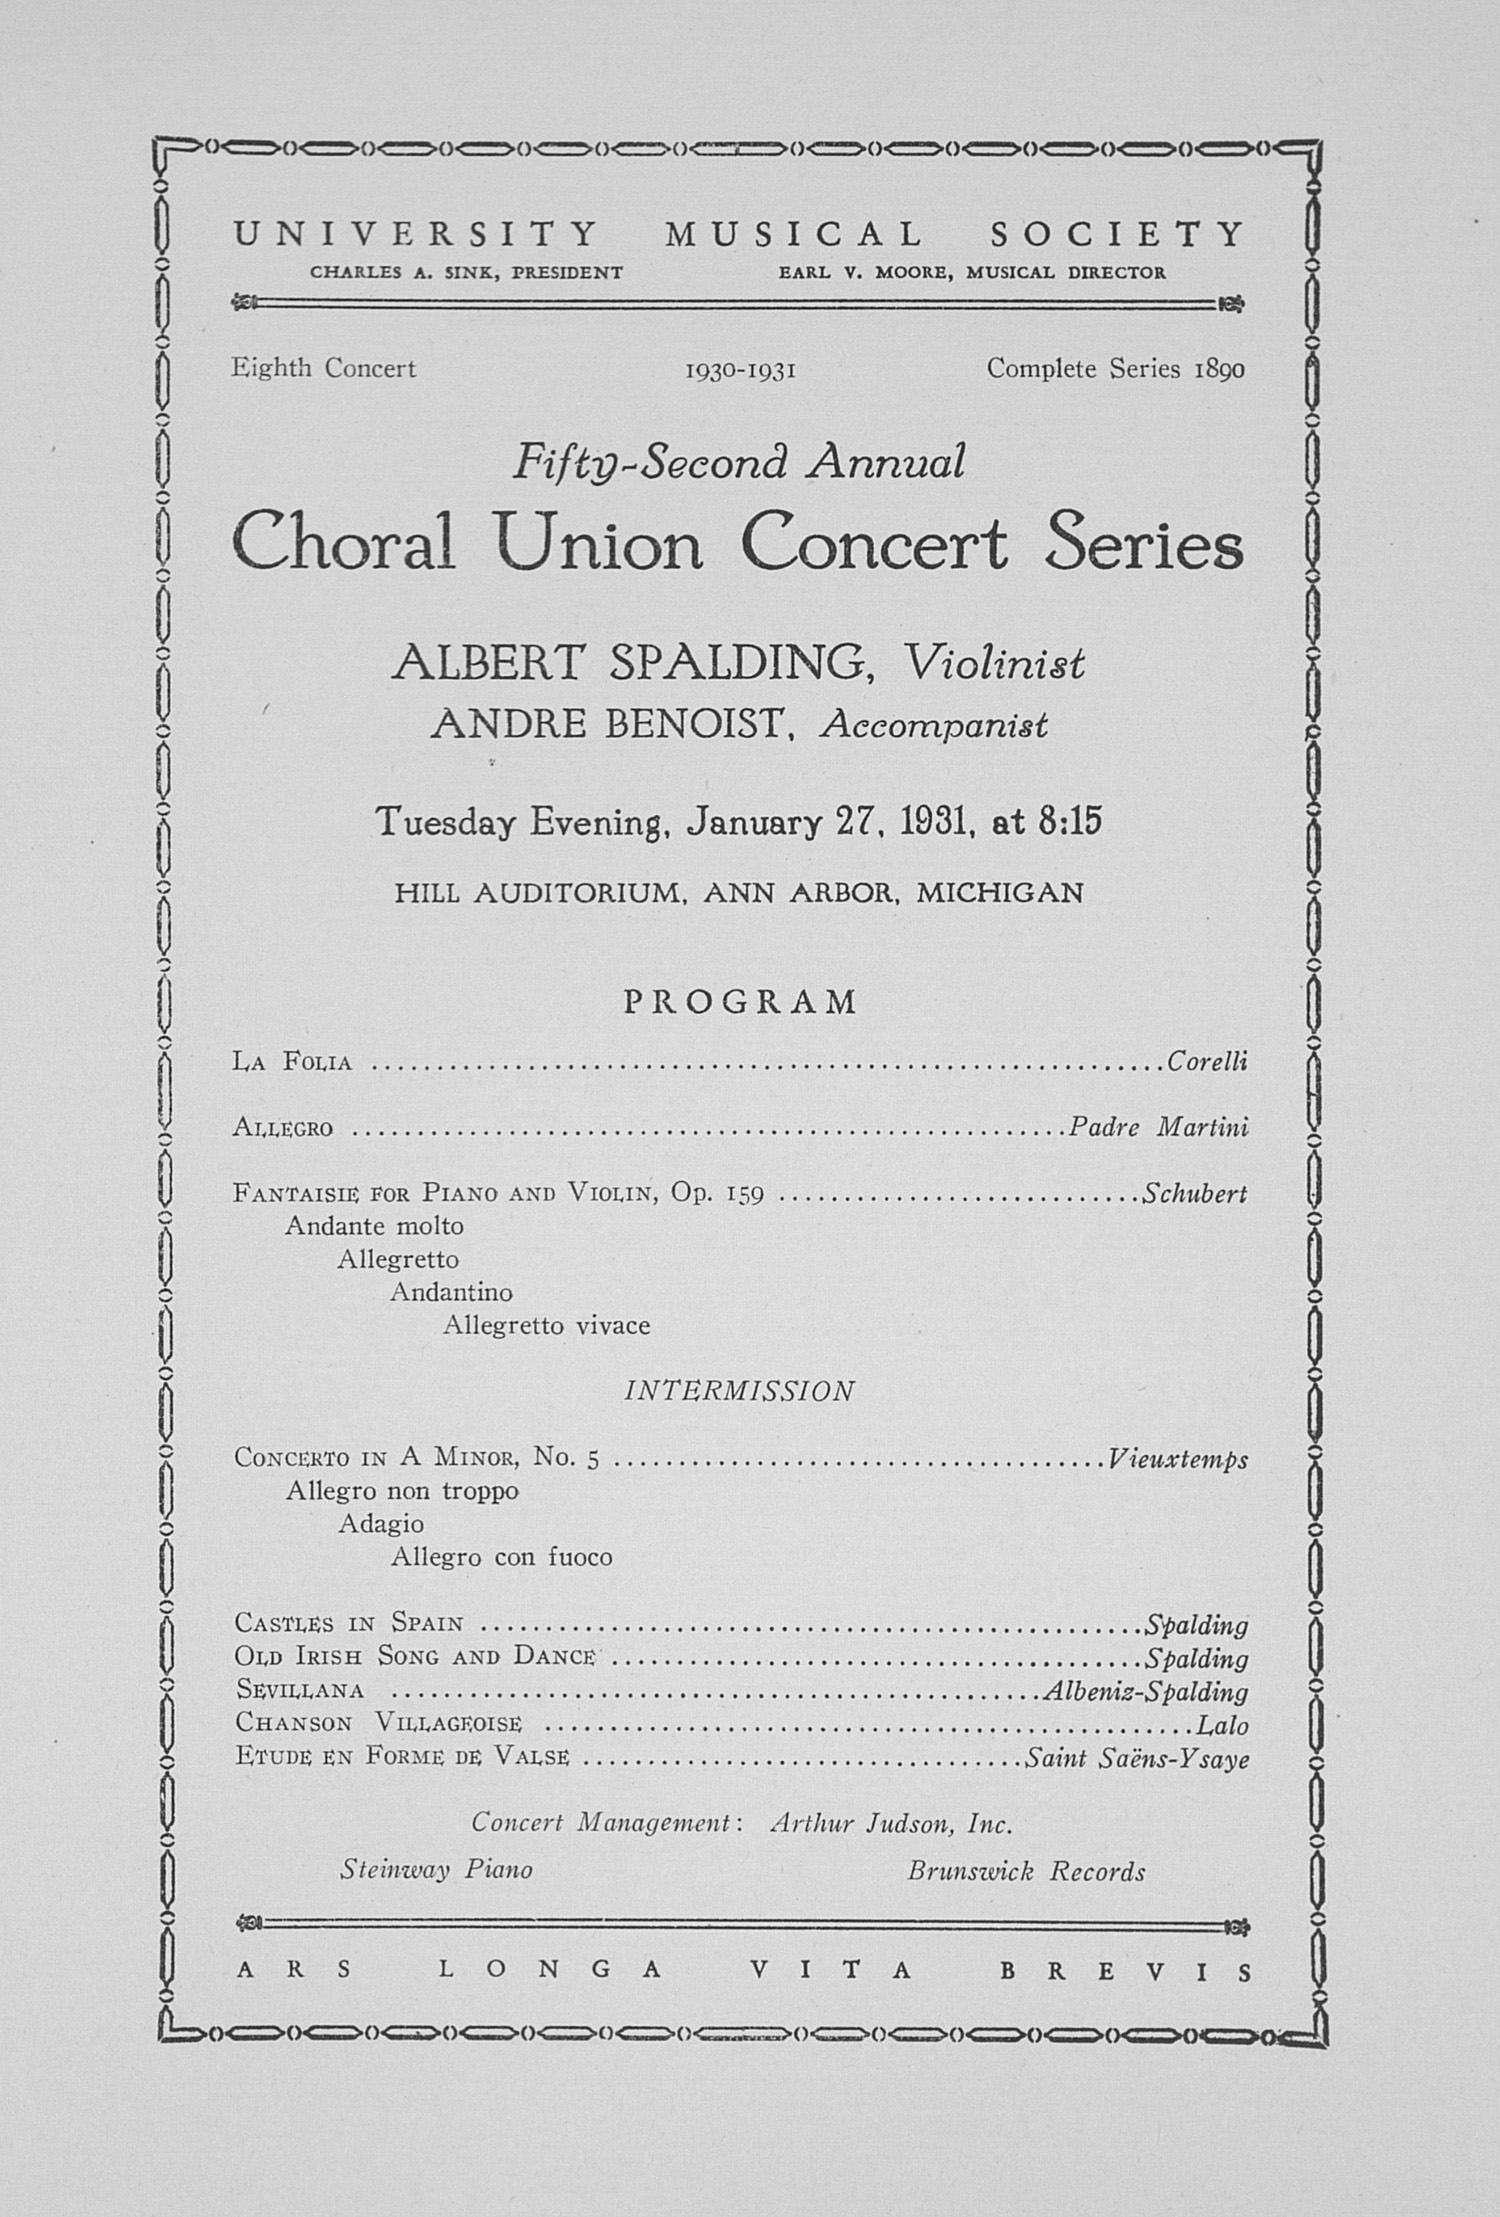 UMS Concert Program, January 27, 1931: Fifty-second Annual Choral Union Concert Series -- Albert Spalding image